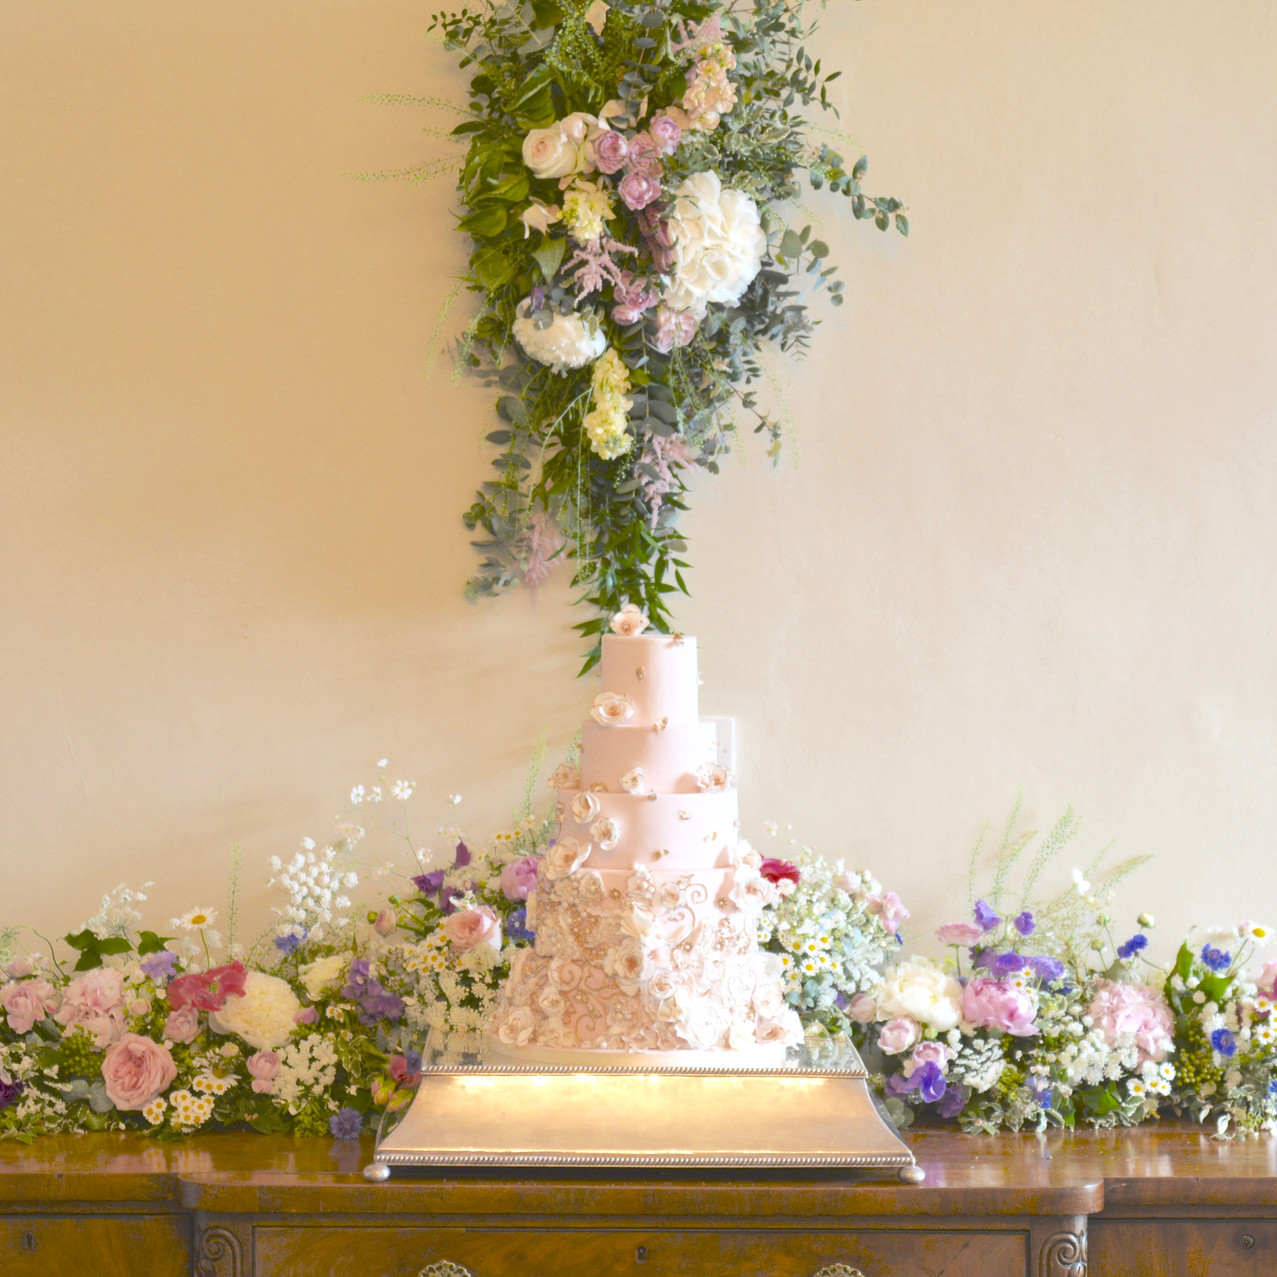 Flowers for the cake stand in the Marble Hall at Kingston House - cake provided by Kate Burt - http://www.kateburtcakes.co.uk/